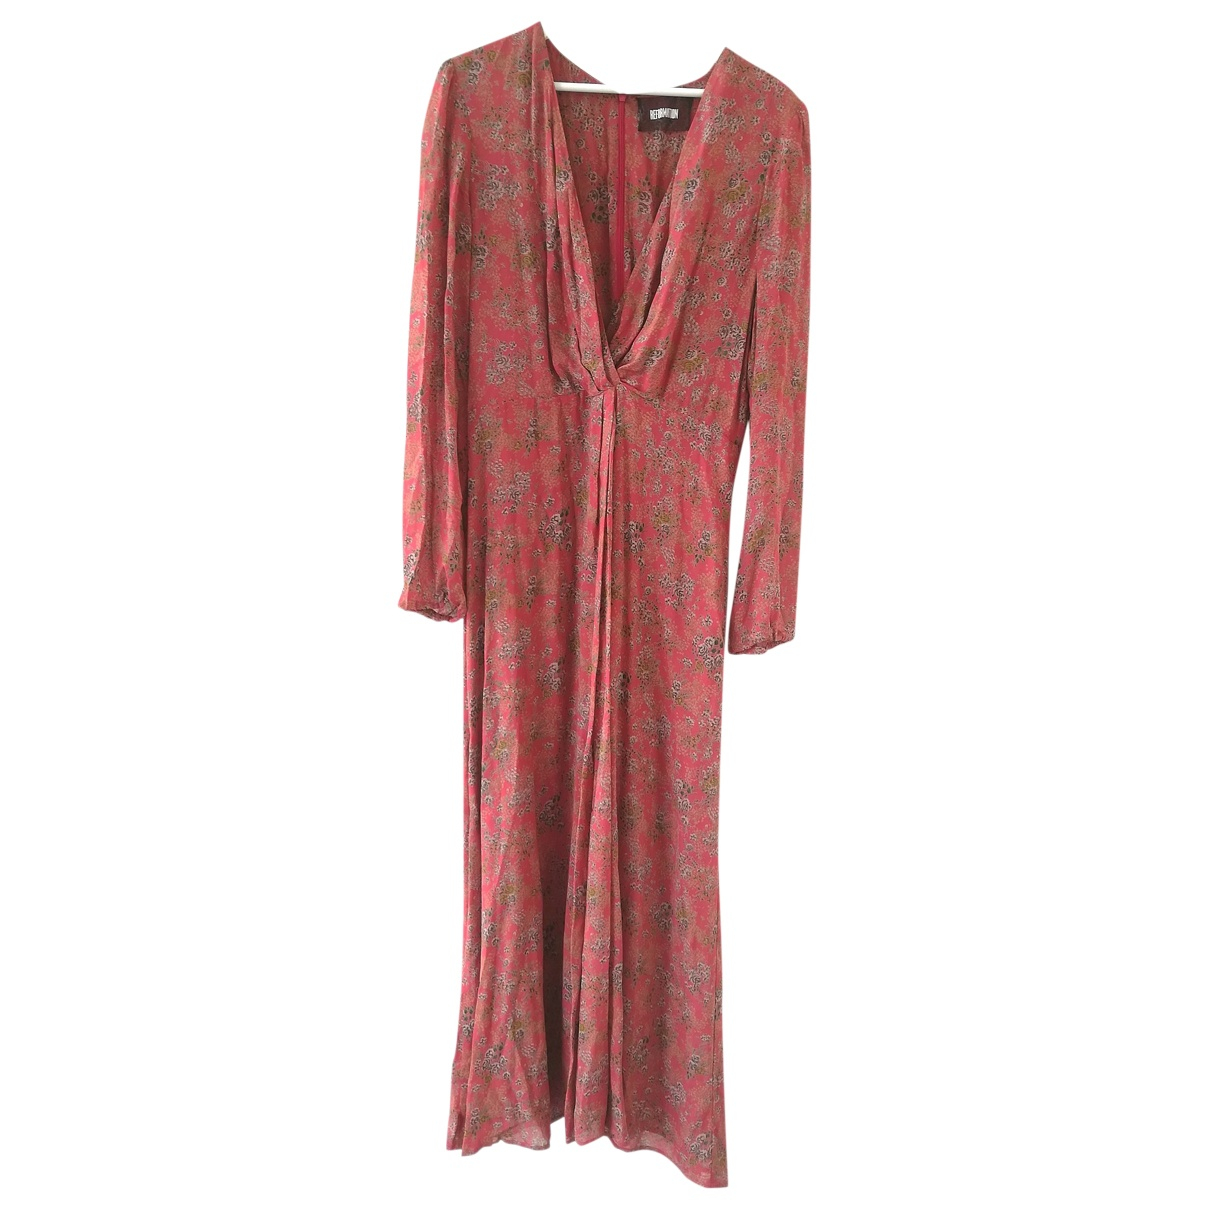 Reformation N Red dress for Women 10 US